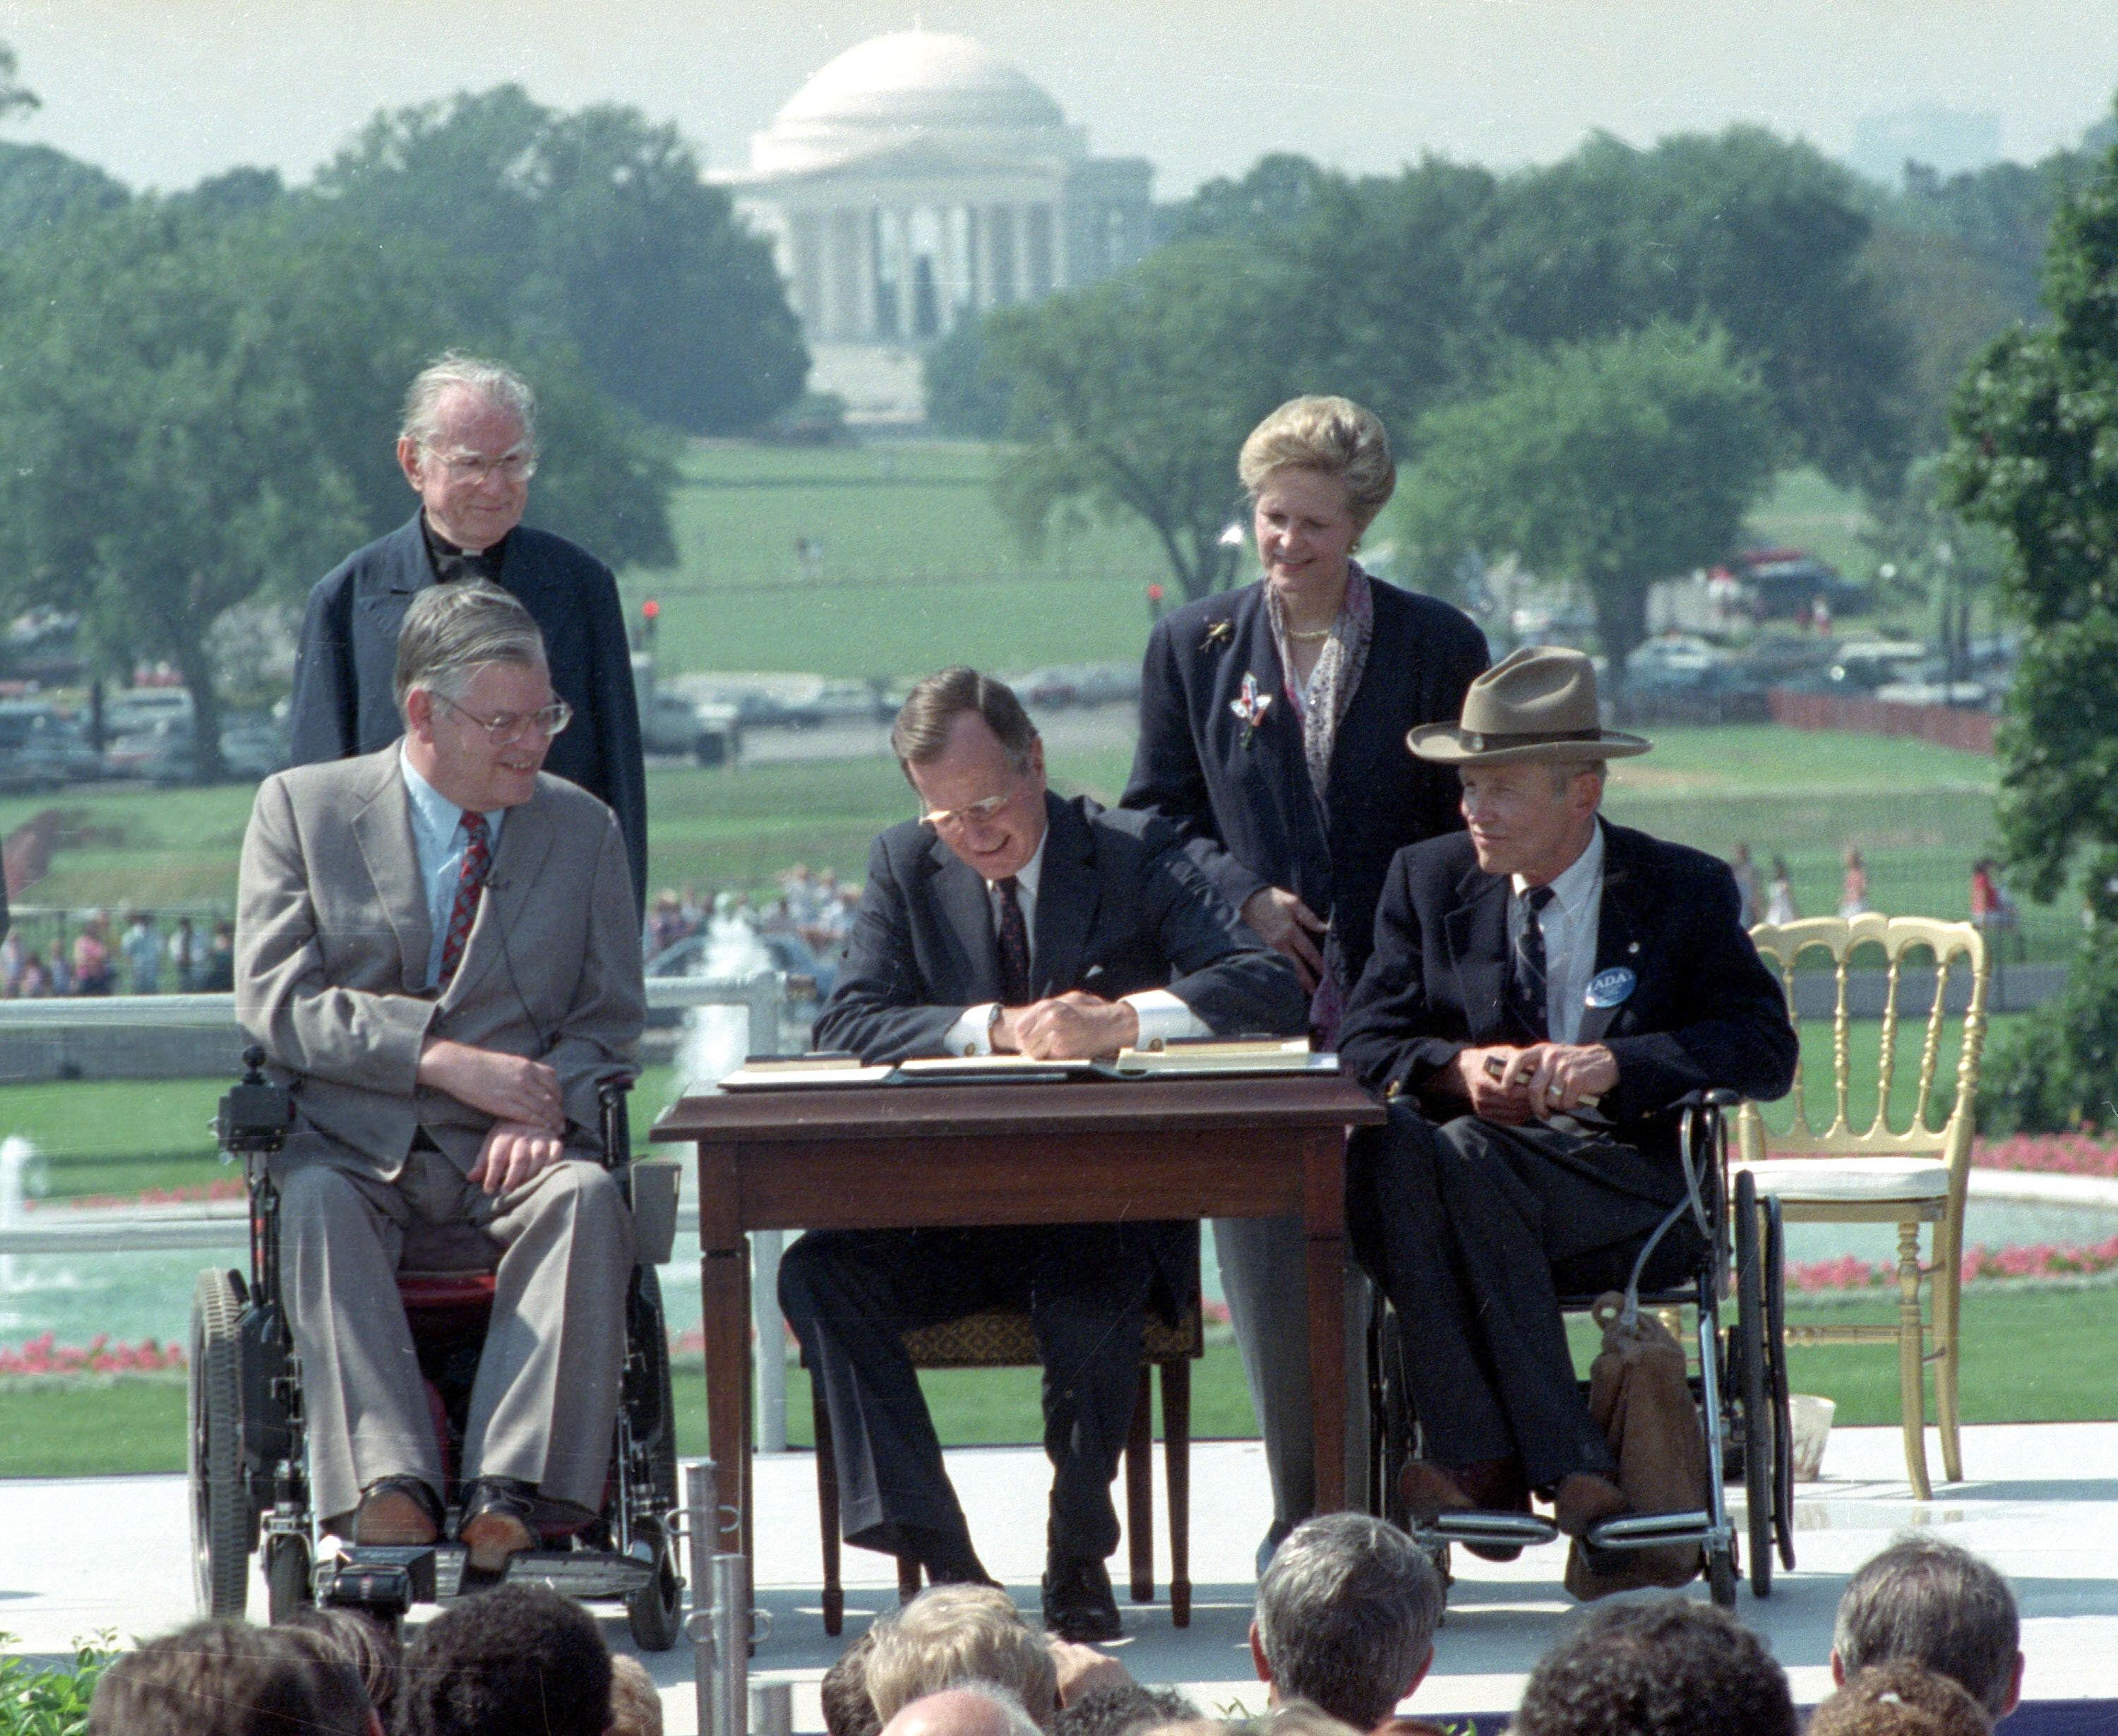 President George H.W. Bush signs the Americans With Disabilities Act on the South Lawn of the White House on July 26, 1990. W